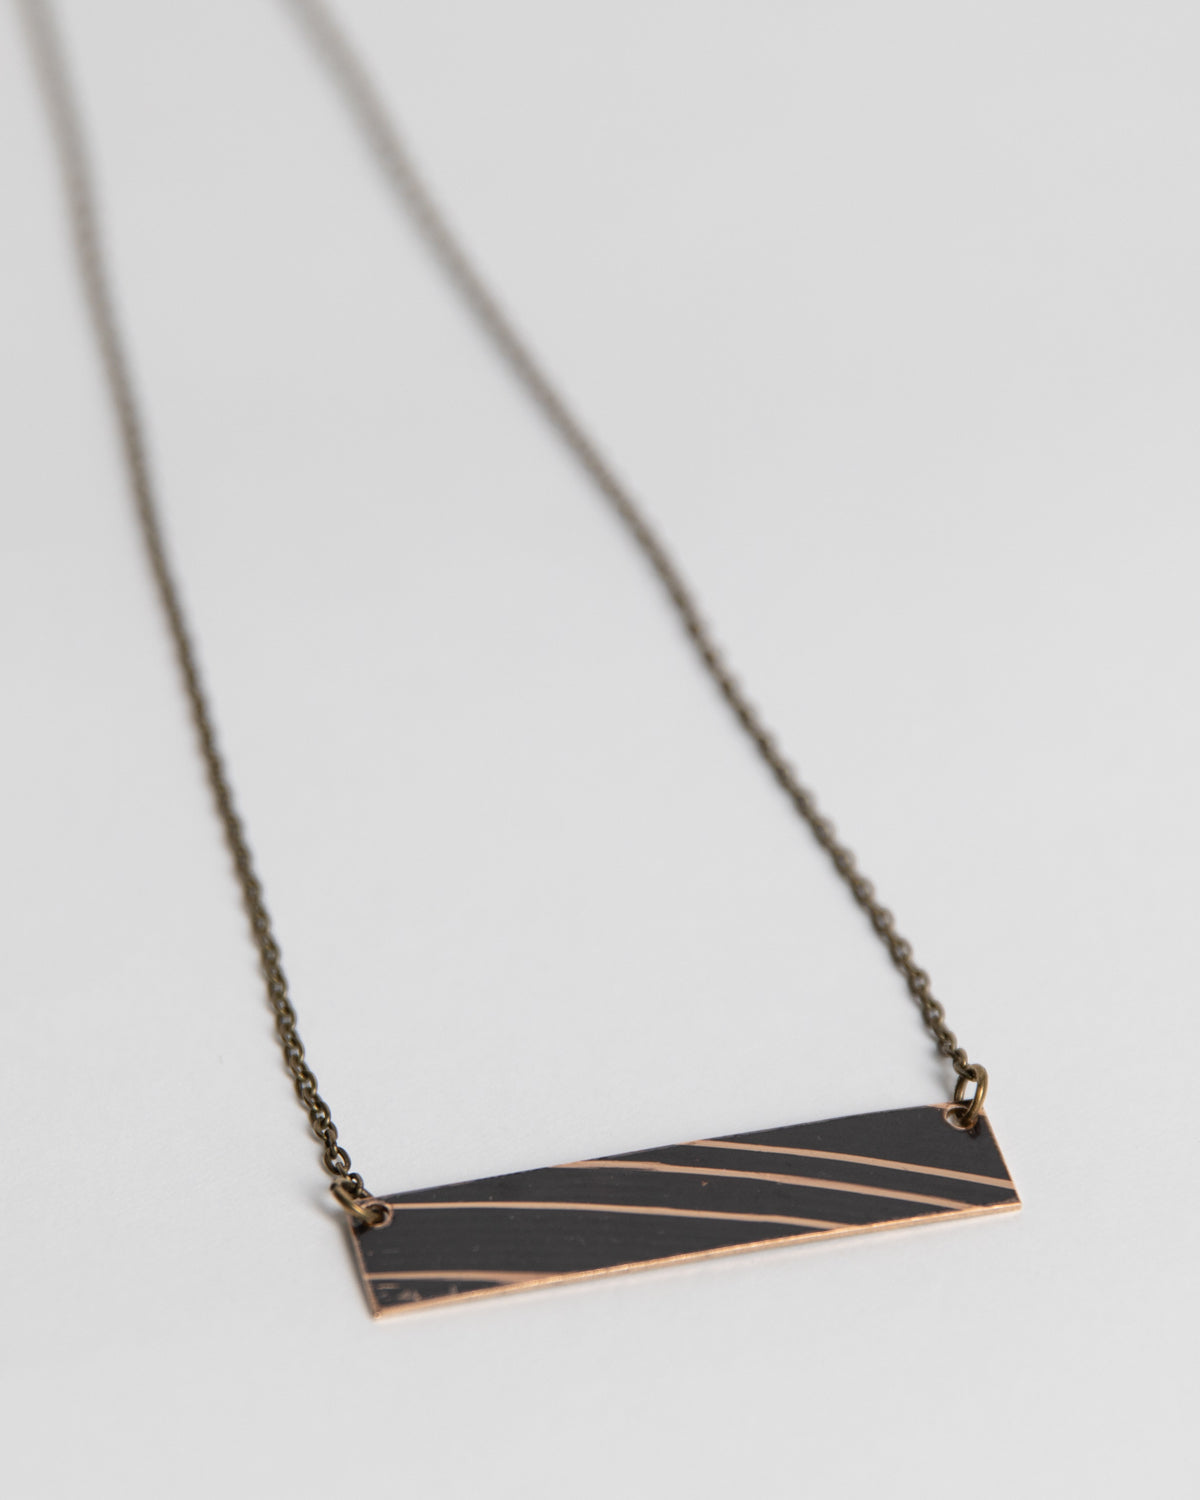 Dark Bar - Reclaimed Cymbal Necklace